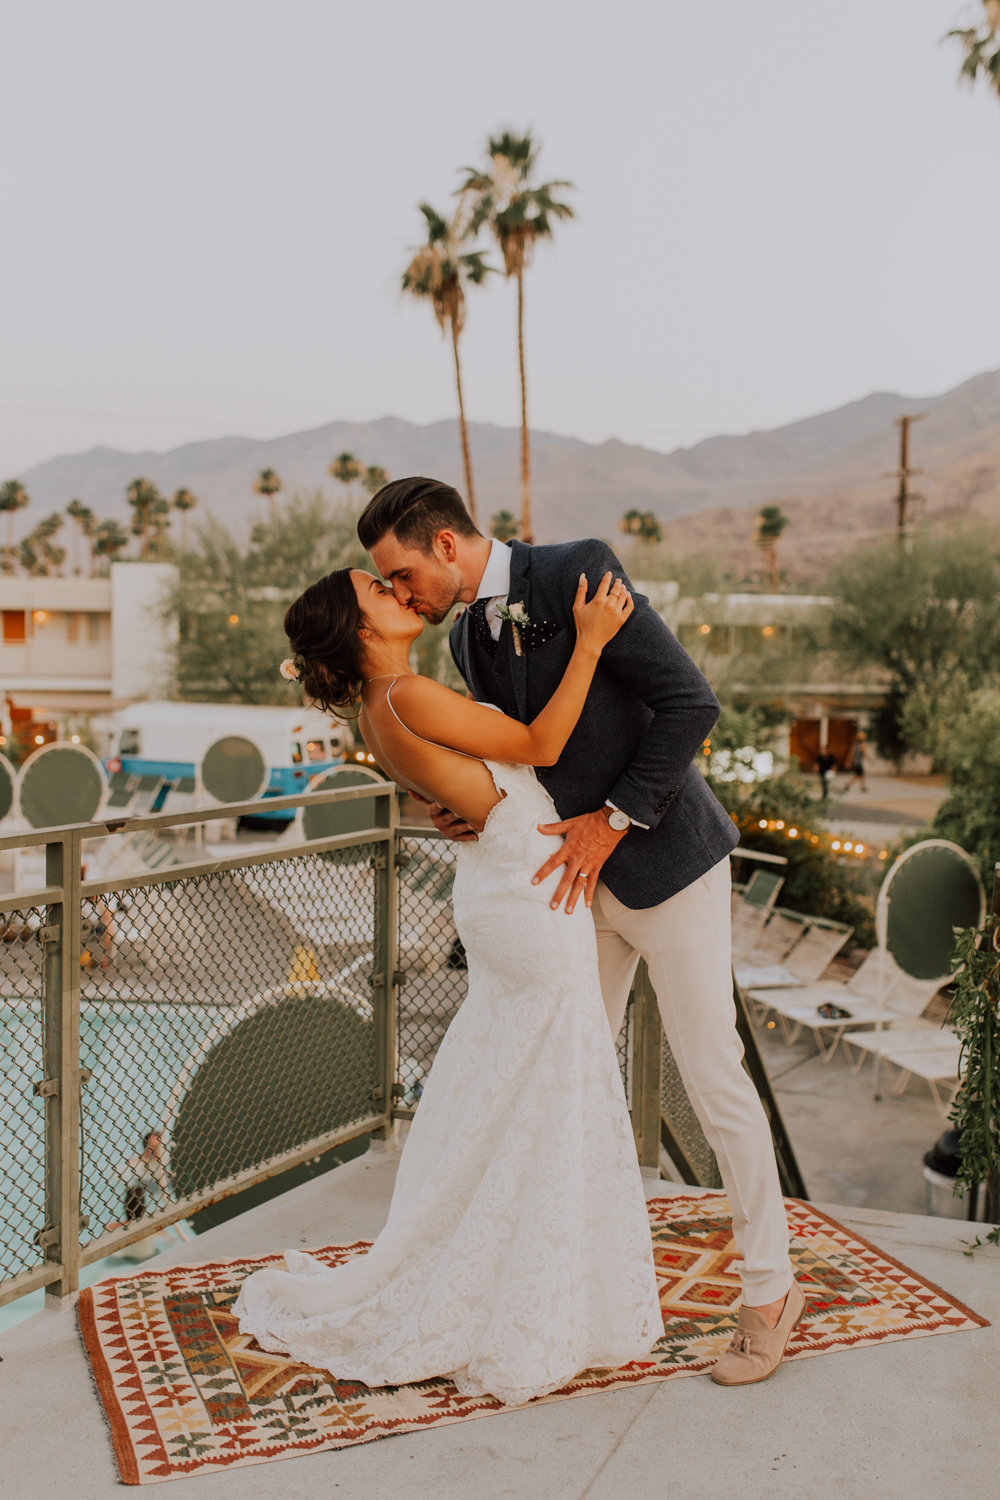 Brianna Broyles_Palm Springs Wedding Photographer_Ace Hotel Wedding_Ace Hotel Palm Springs-80